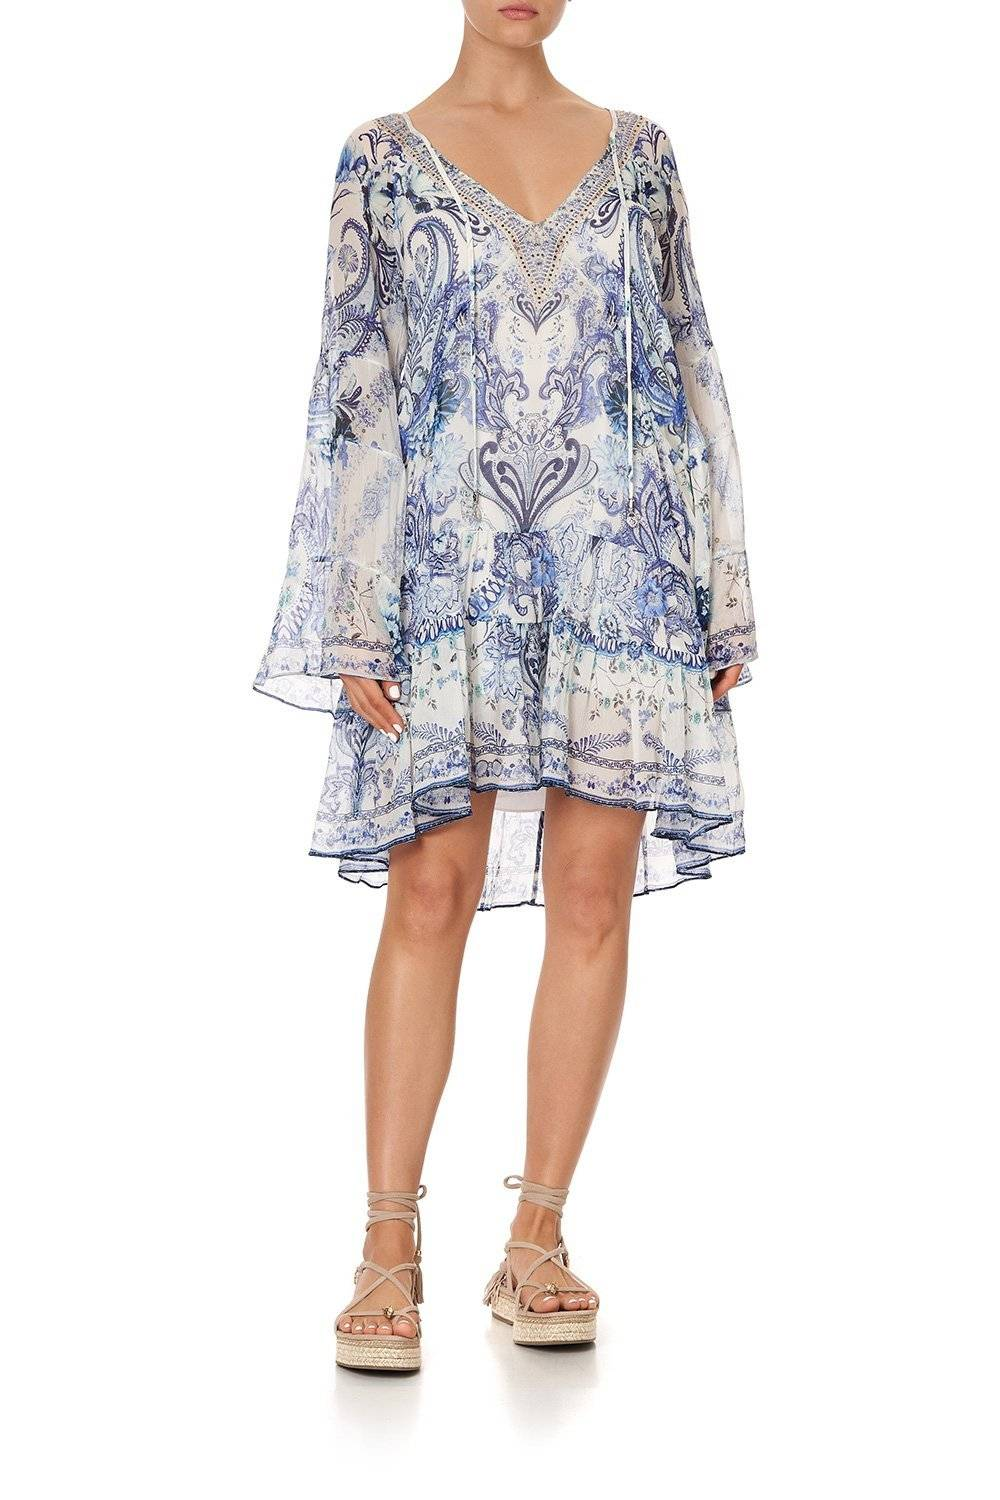 CAMILLA white and blue floral long sleeve mini dres